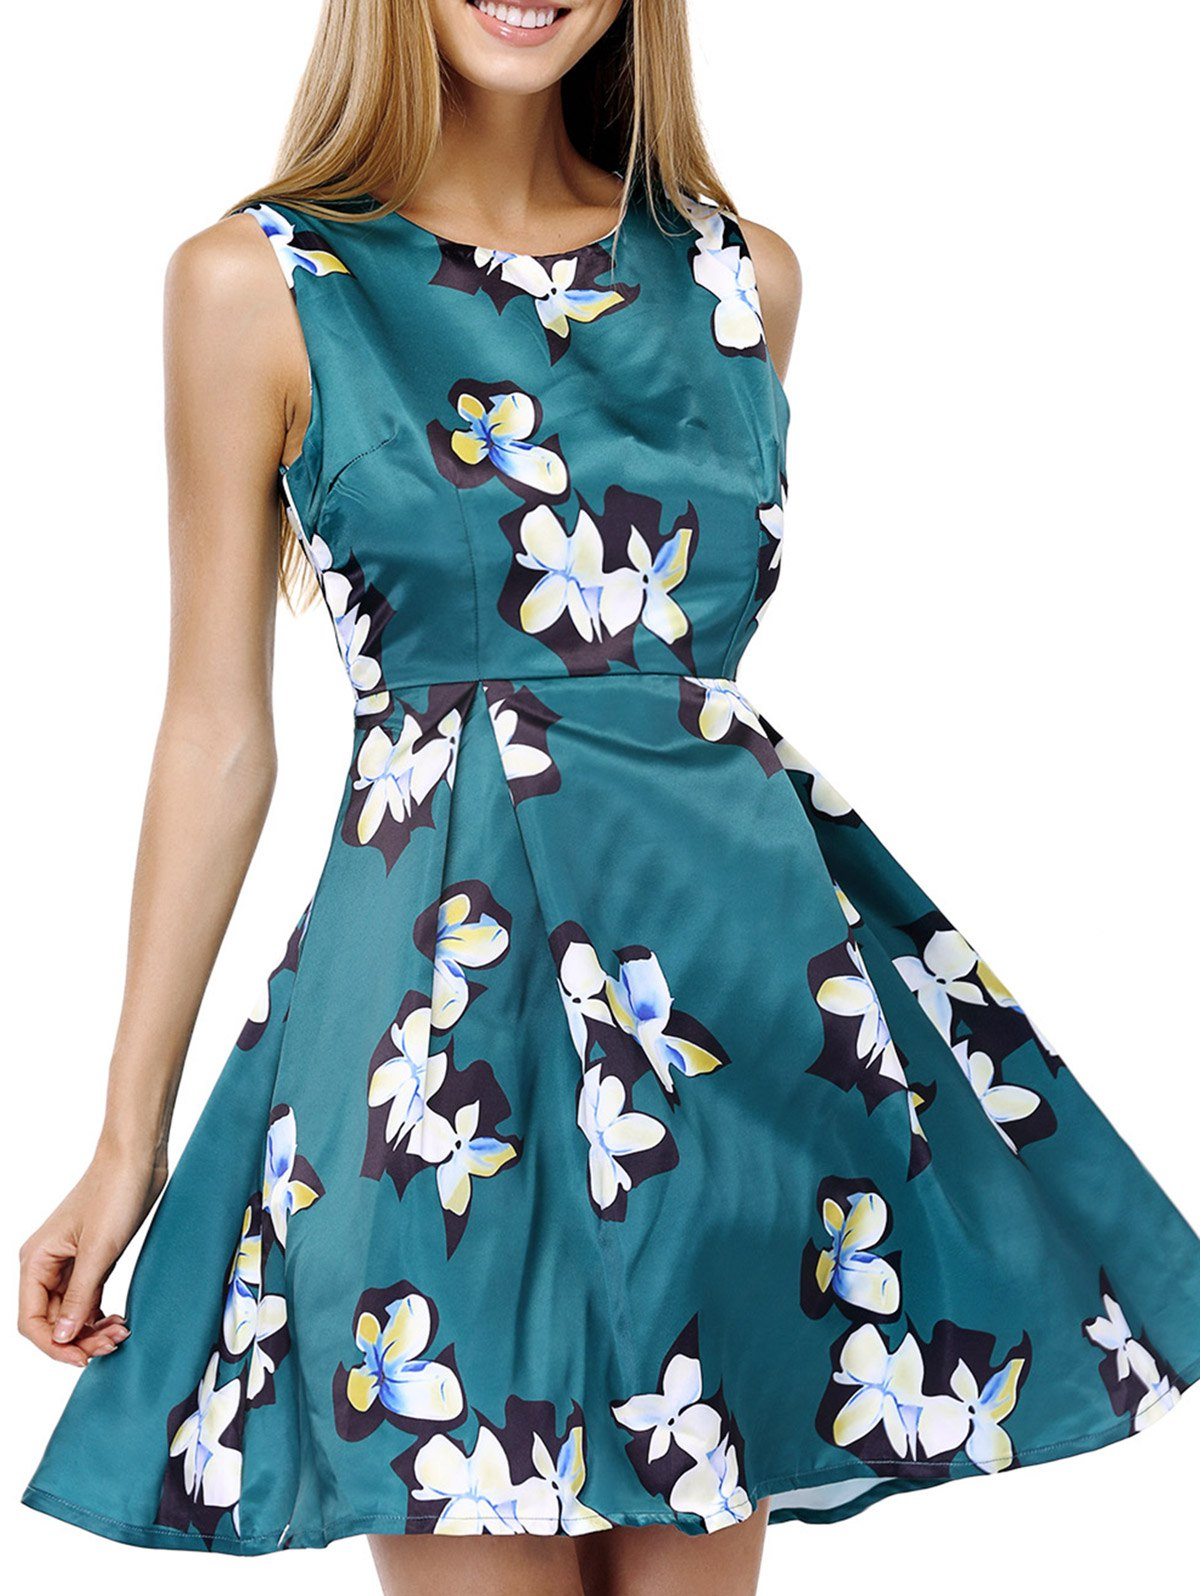 Sleeveless Floral Race Day Dress - GREEN S